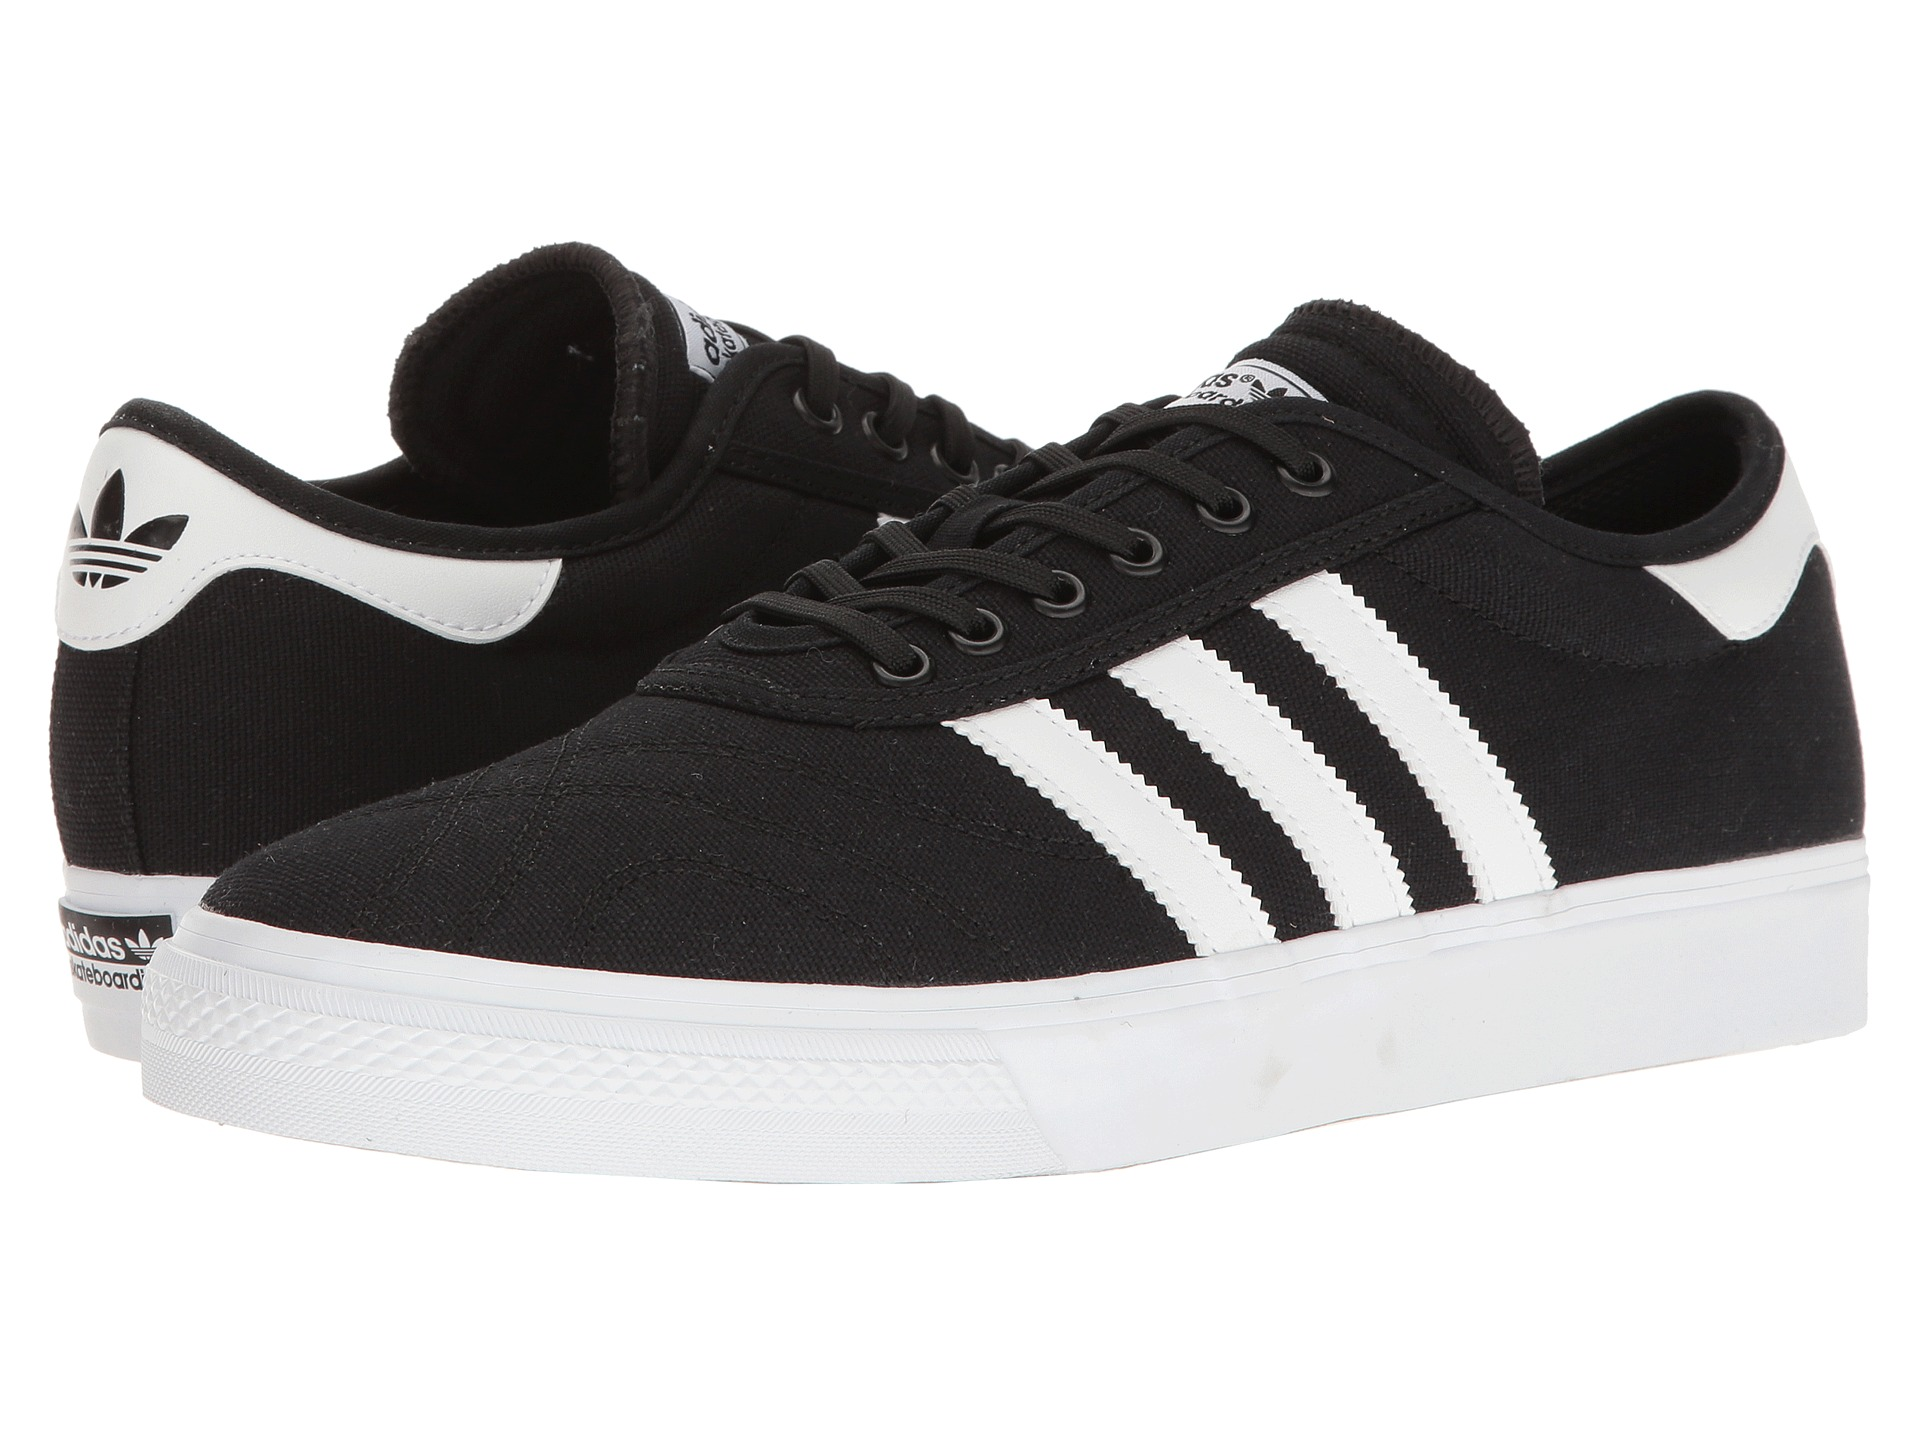 Adidas Adi Ease Premiere Mens Shoes Red White